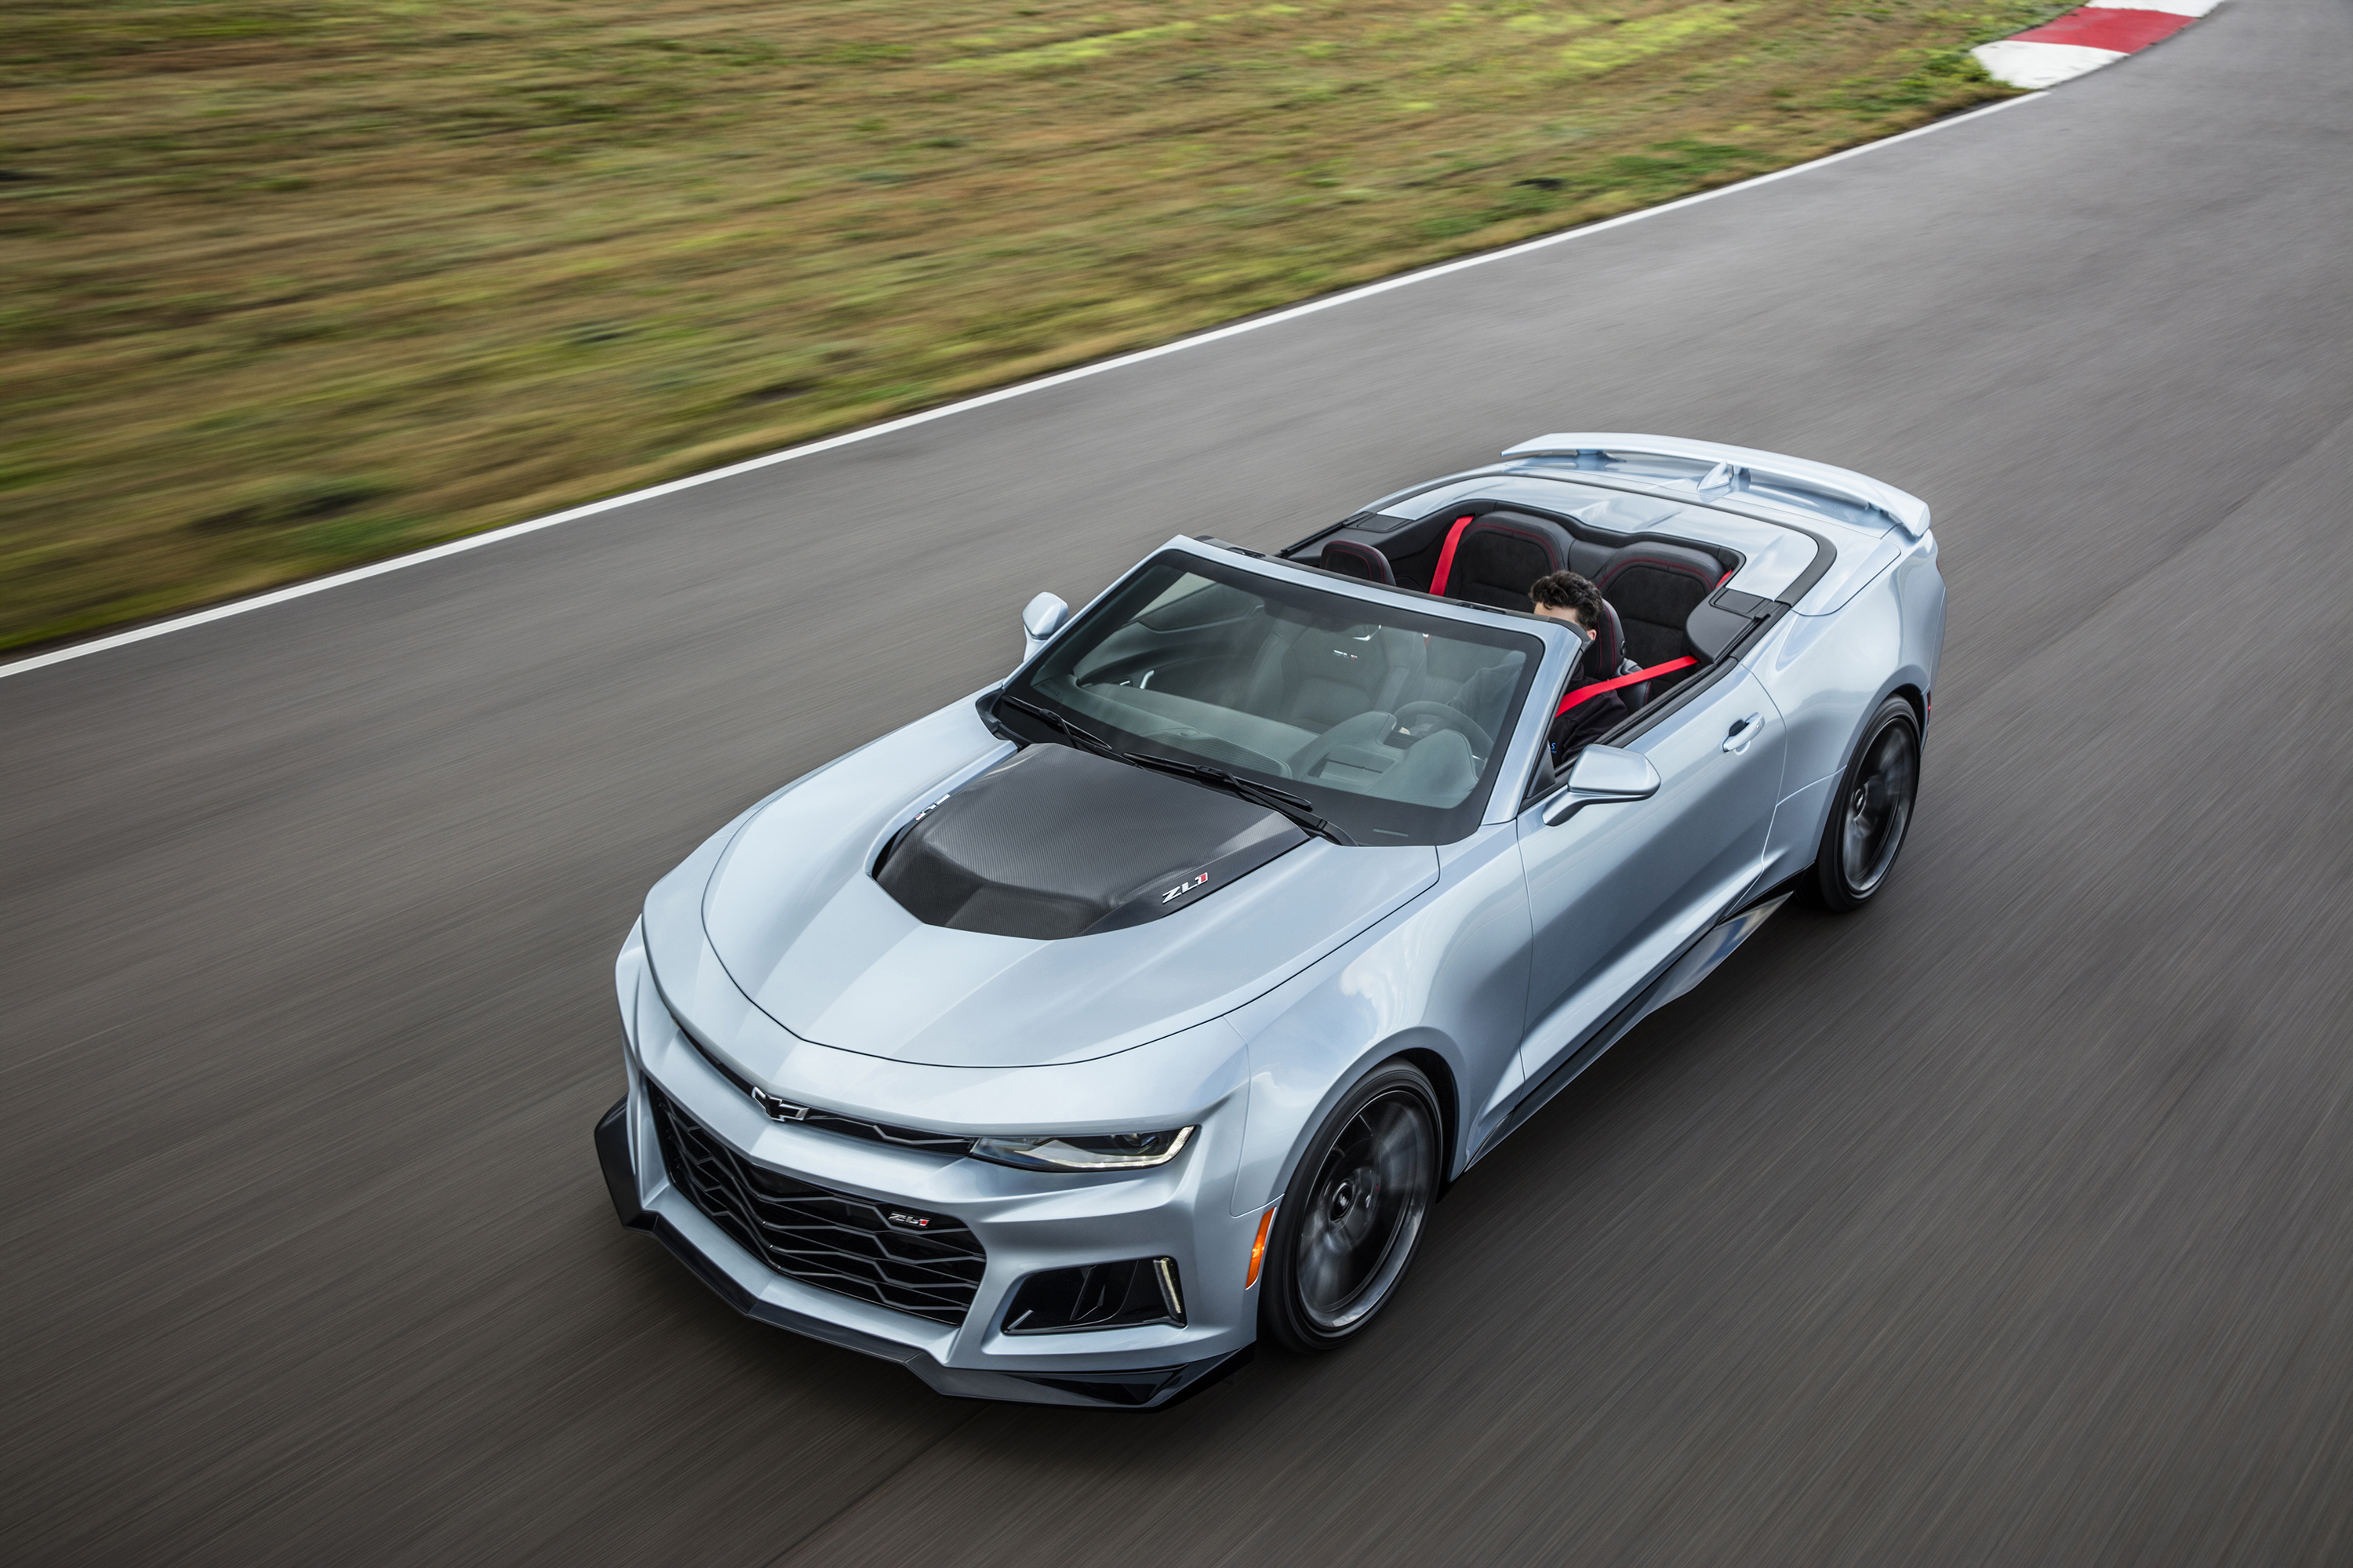 reintroduced to racecar revealed years trackworthy cup monster than the series more energy off capable performance used track straight chevrolet ultimate nascar car race later offer developed camaro as and